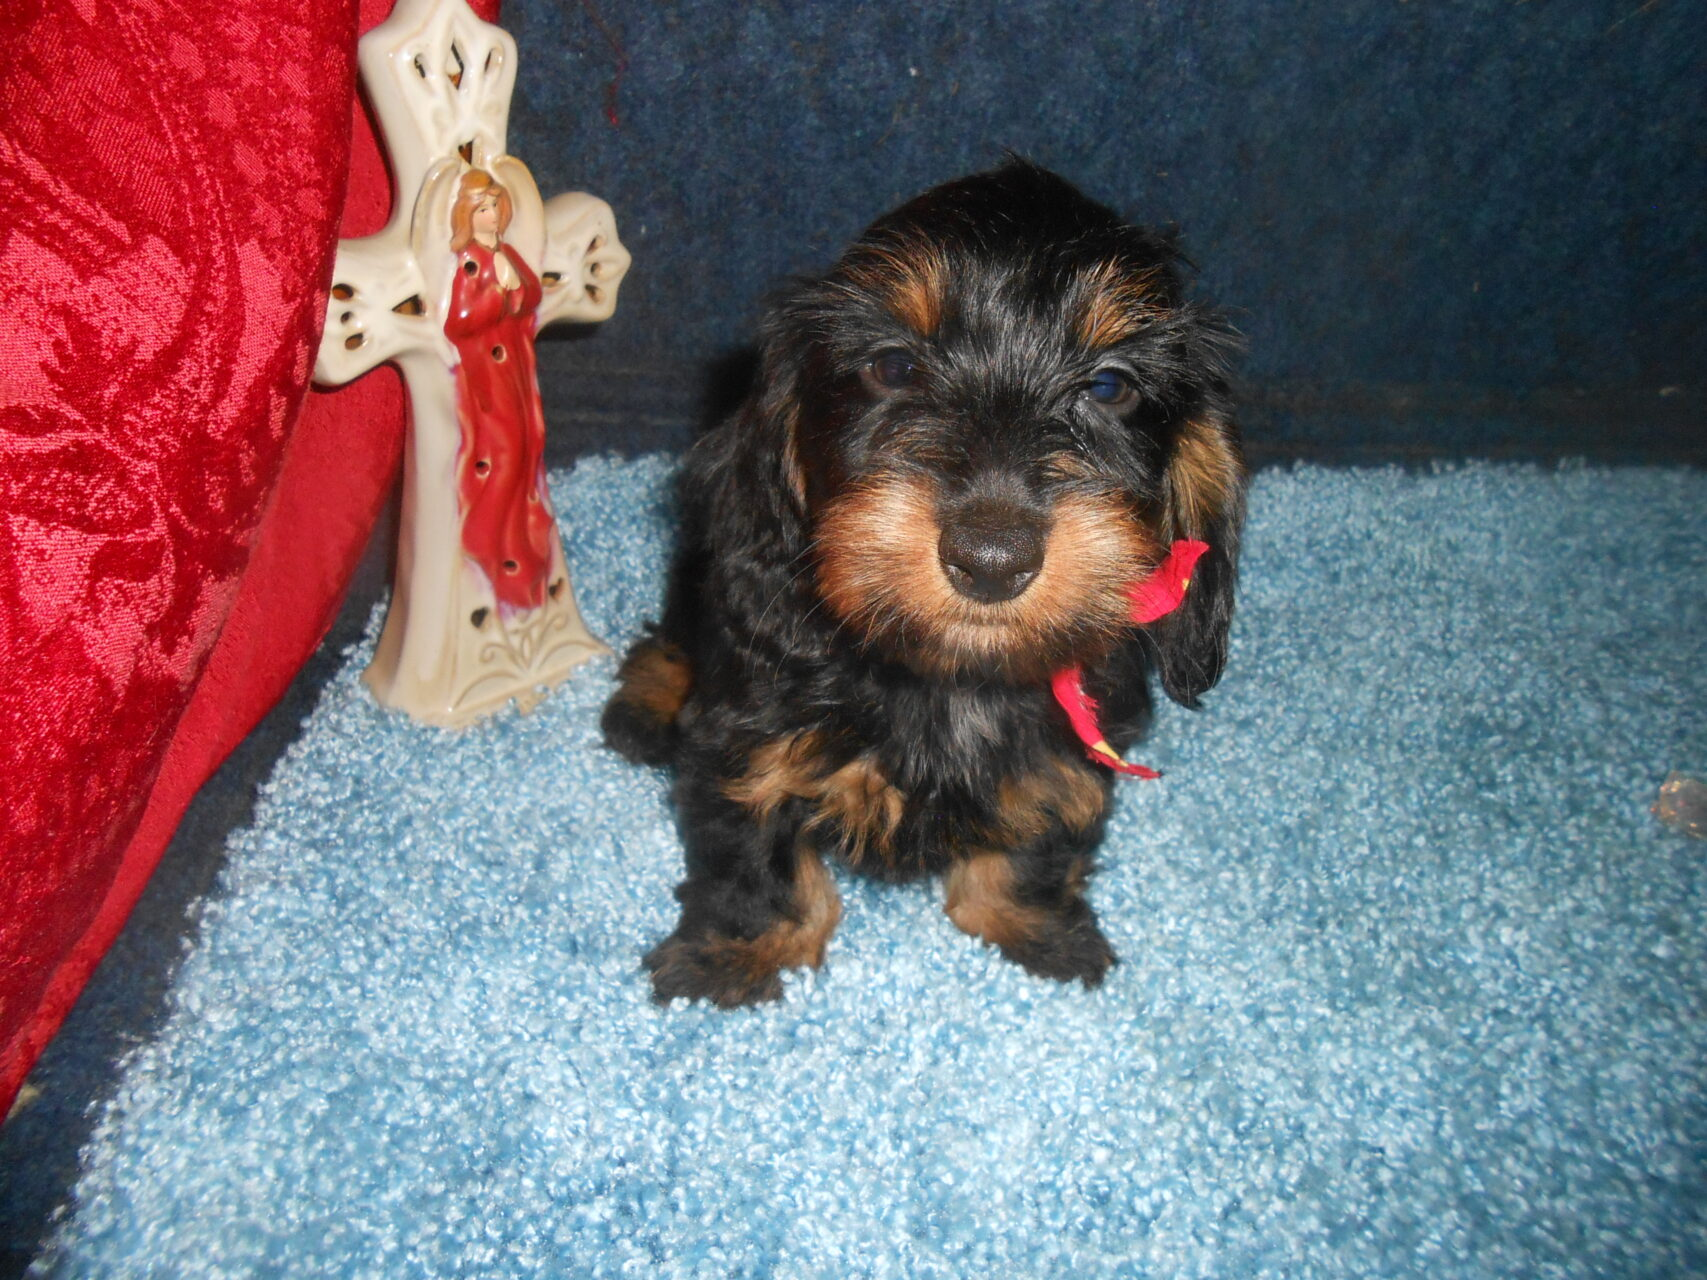 Katy Belle's Soft Wirehair AKC & CKC Registered Black and Tan Female is Sold to Jerry.